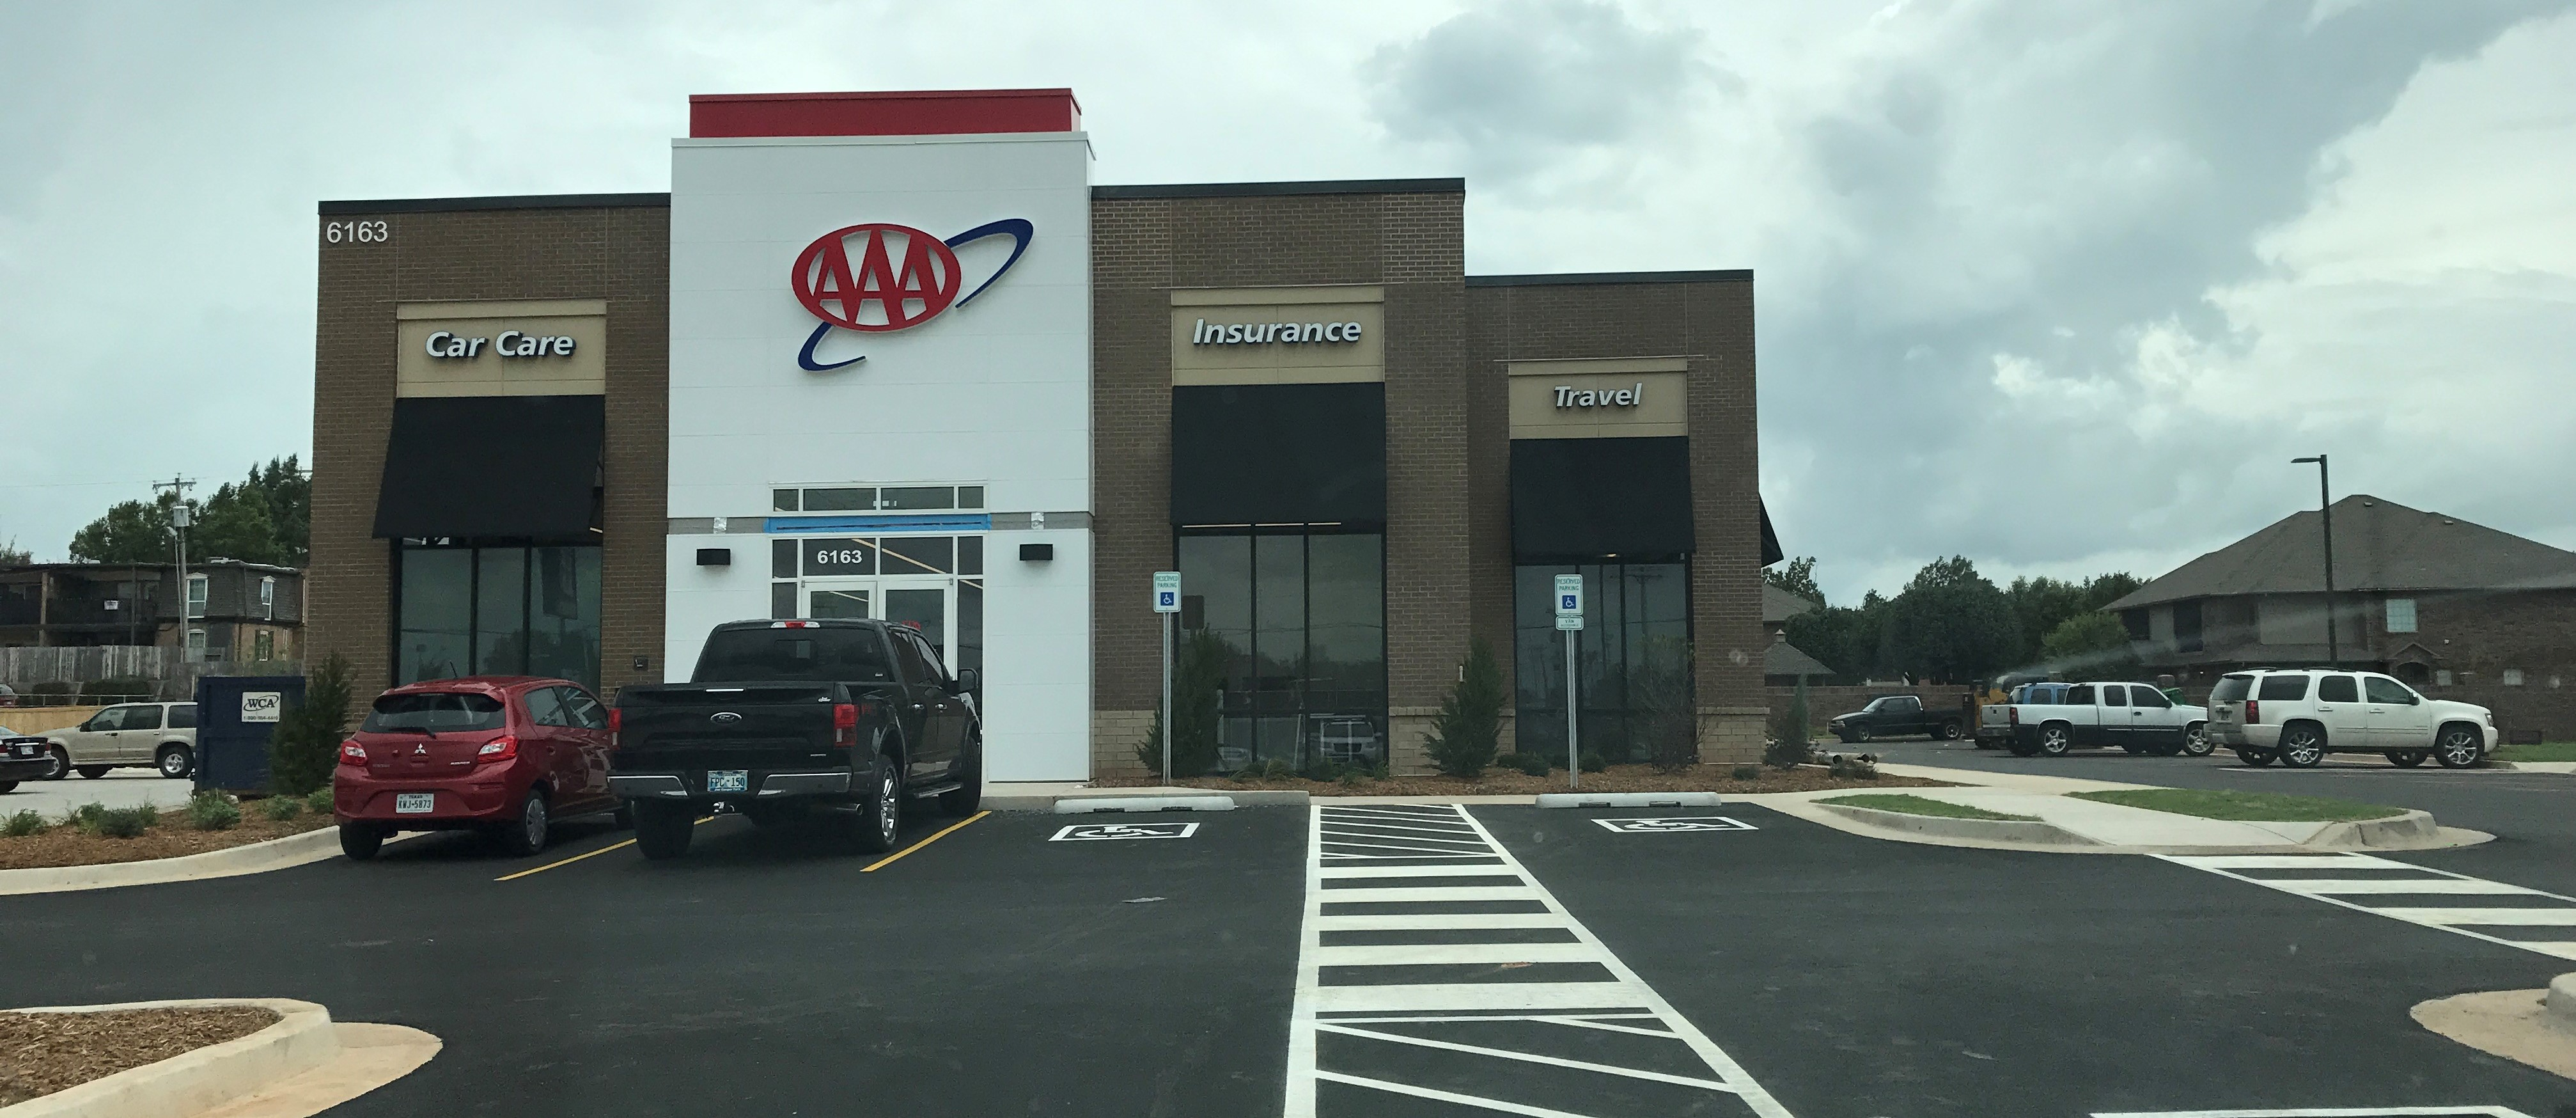 Customers Visiting The 10 800 Square Foot Will Be Able To Access Car Repair And Service Alongside Traditional Aaa Membership Travel Insurance